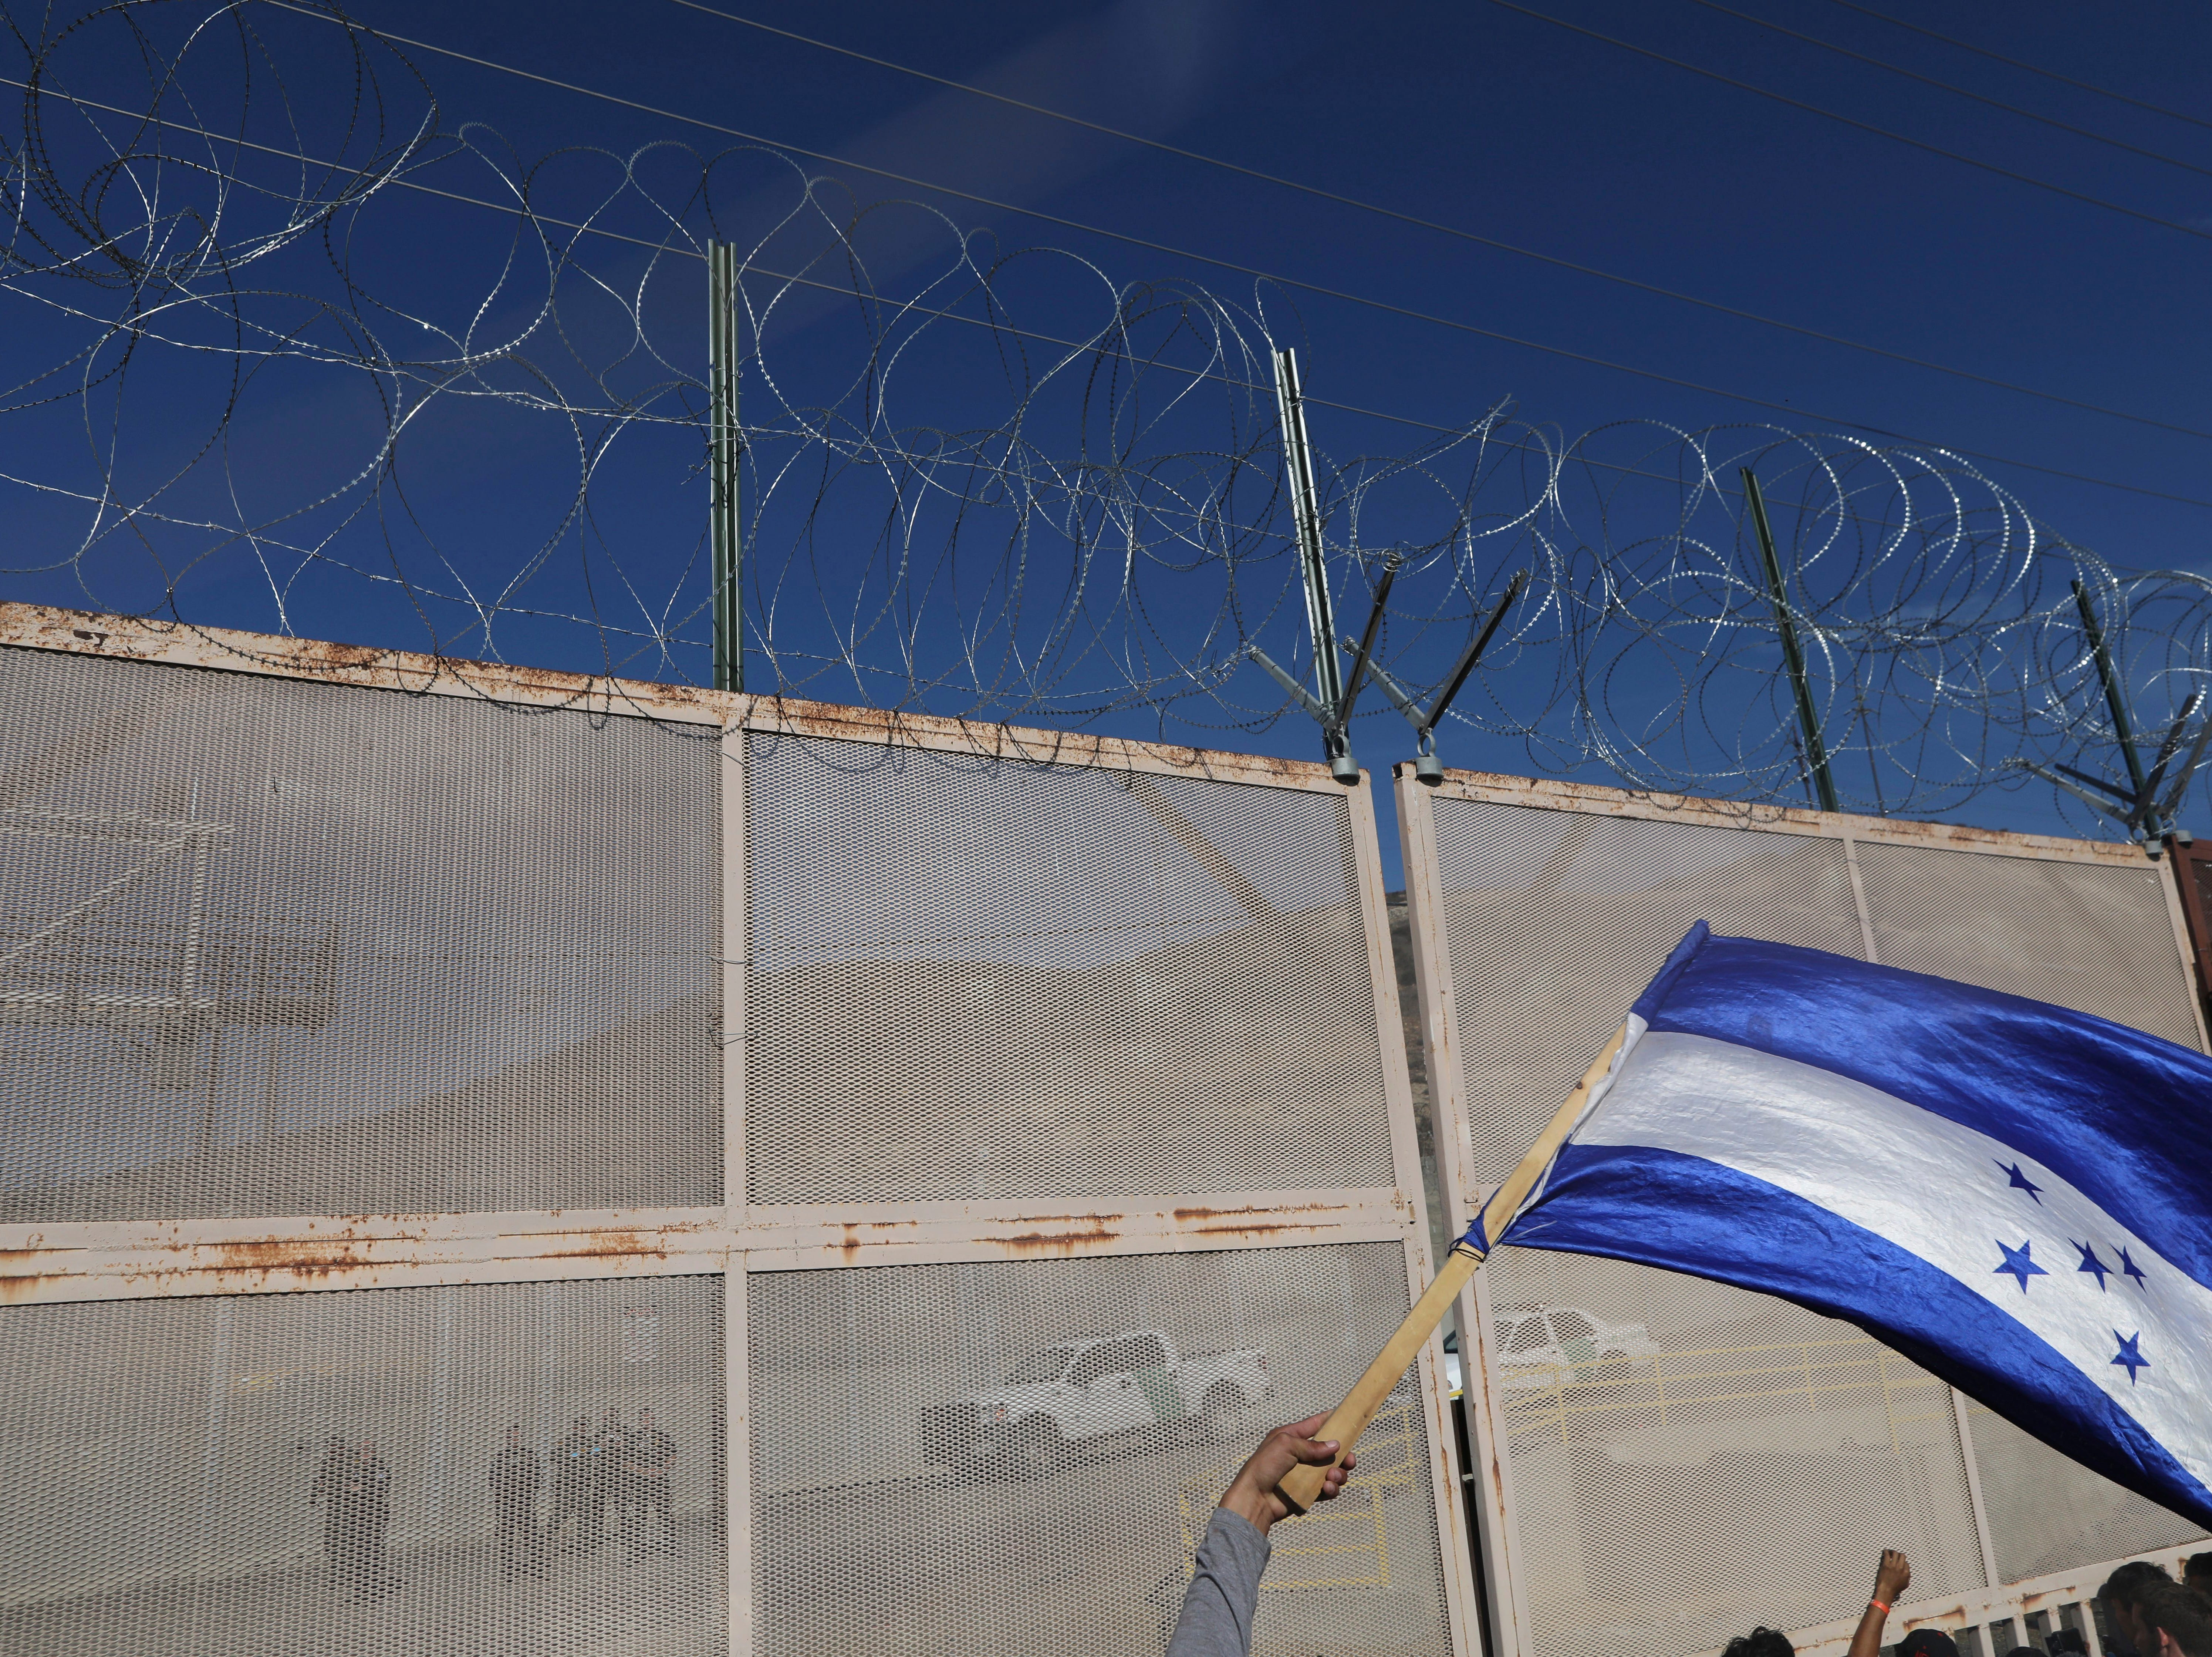 A migrant waves a Honduran flag as U.S. border patrol agents stand guard, seen at left through the fence, at the Mexico-U.S. border in Tijuana, Mexico, Nov. 25, 2018, as a group of migrants tries to reach the U.S. The mayor of Tijuana has declared a humanitarian crisis in his border city and says that he has asked the United Nations for aid to deal with the approximately 5,000 Central American migrants who have arrived in the city. (AP Photo/Rodrigo Abd)